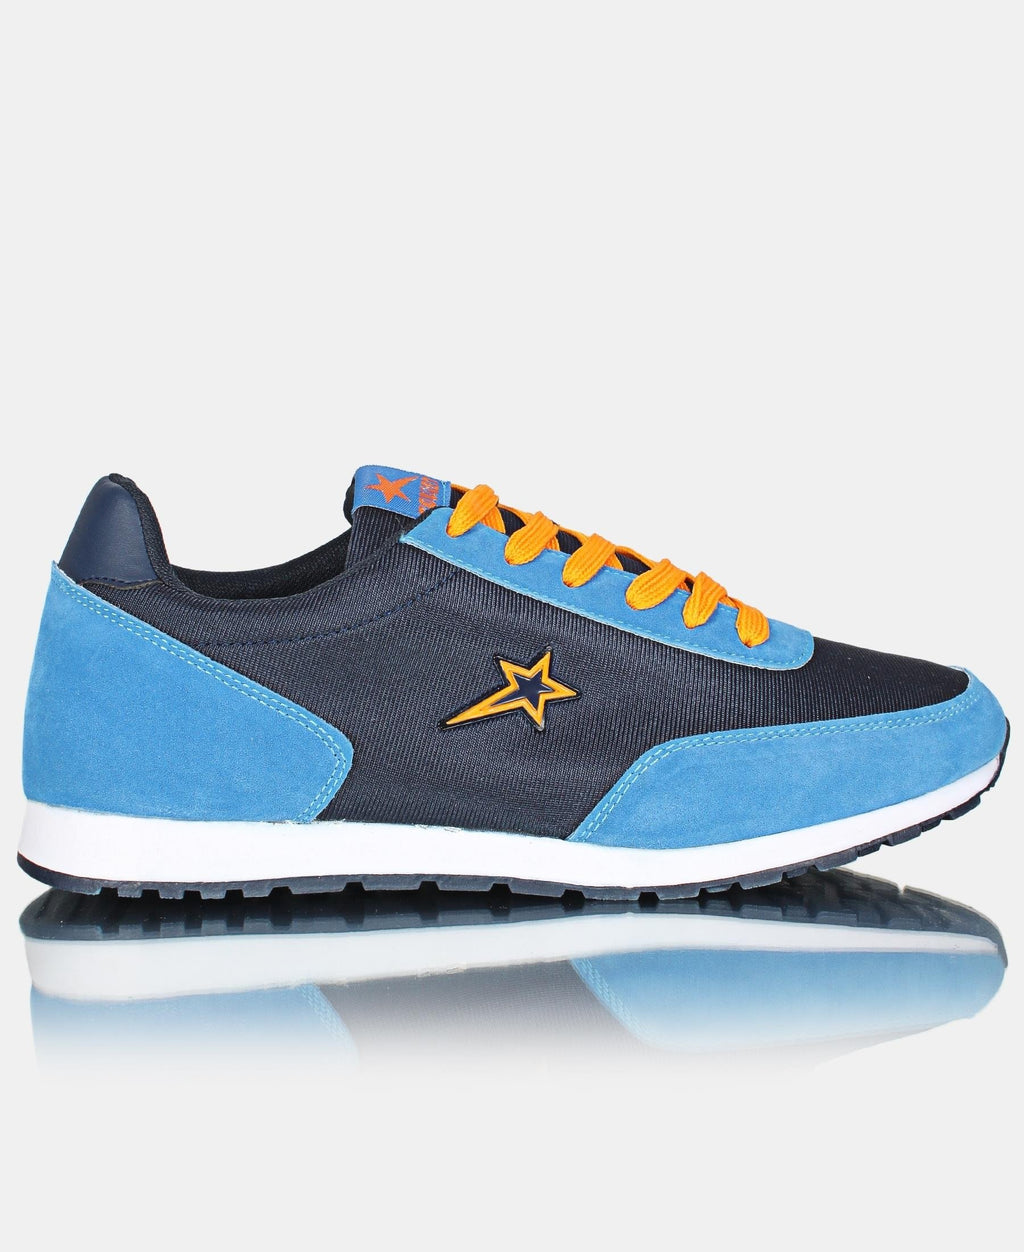 Men's Avalanche Sneakers - Blue